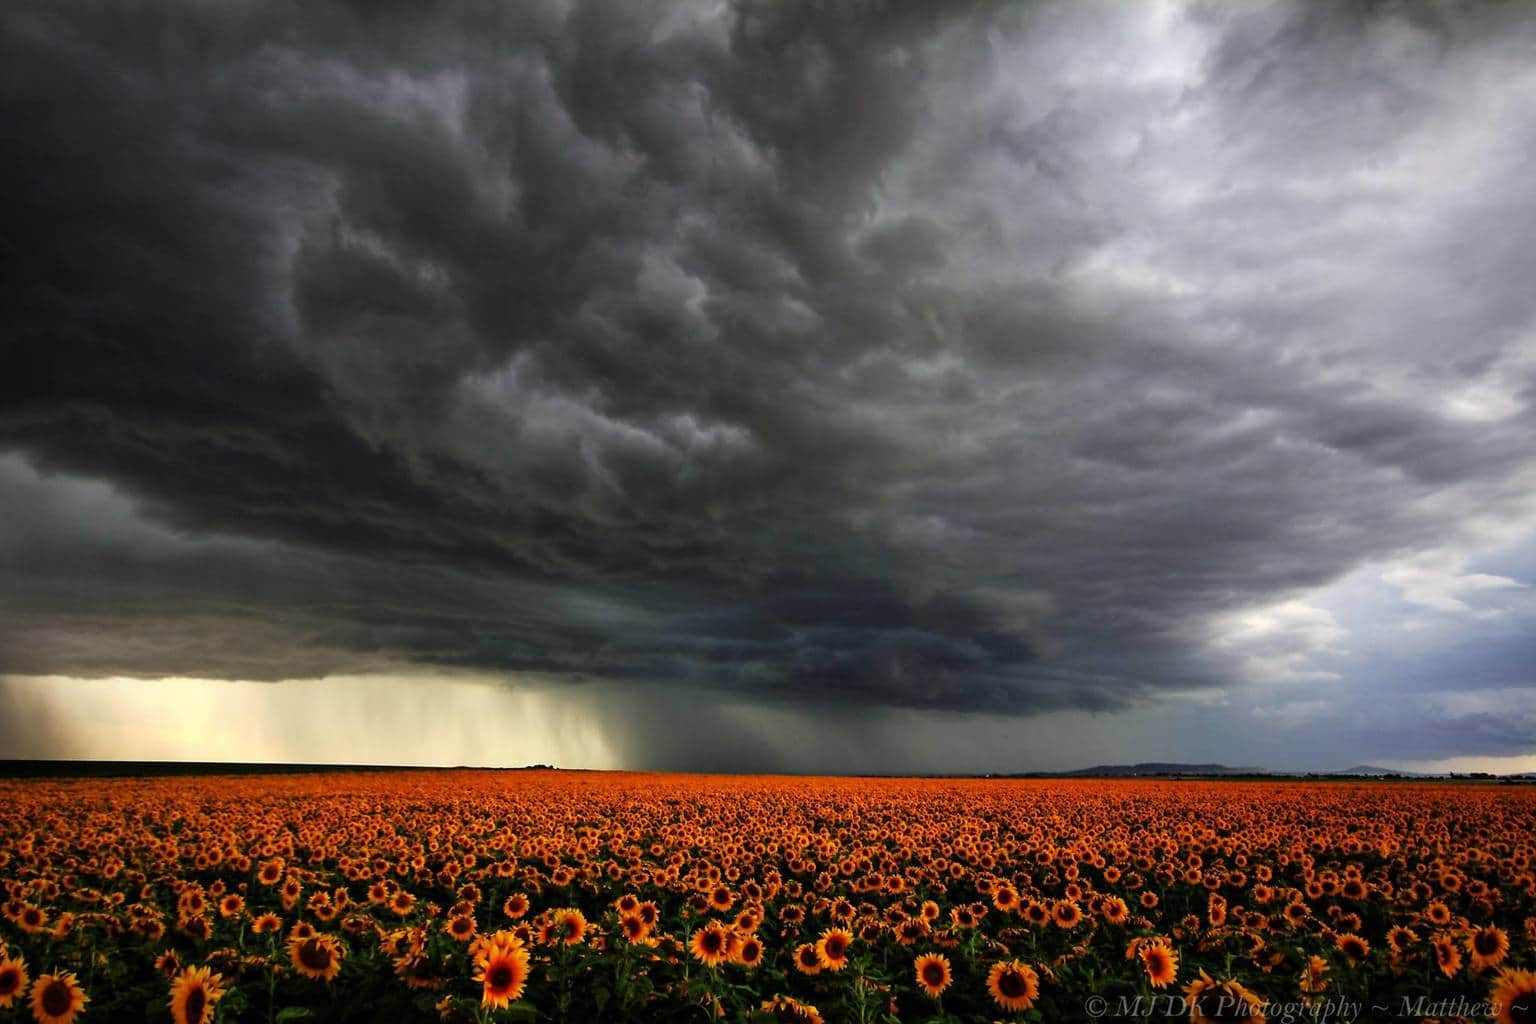 Here Is A Shot Of A Storm Cell That Passed Over Alora On The 26th Of March This Year. I Was Lucky Enough To Find A Paddock Of Sunflowers Still Out In Flower.. Hope You All Enjoy